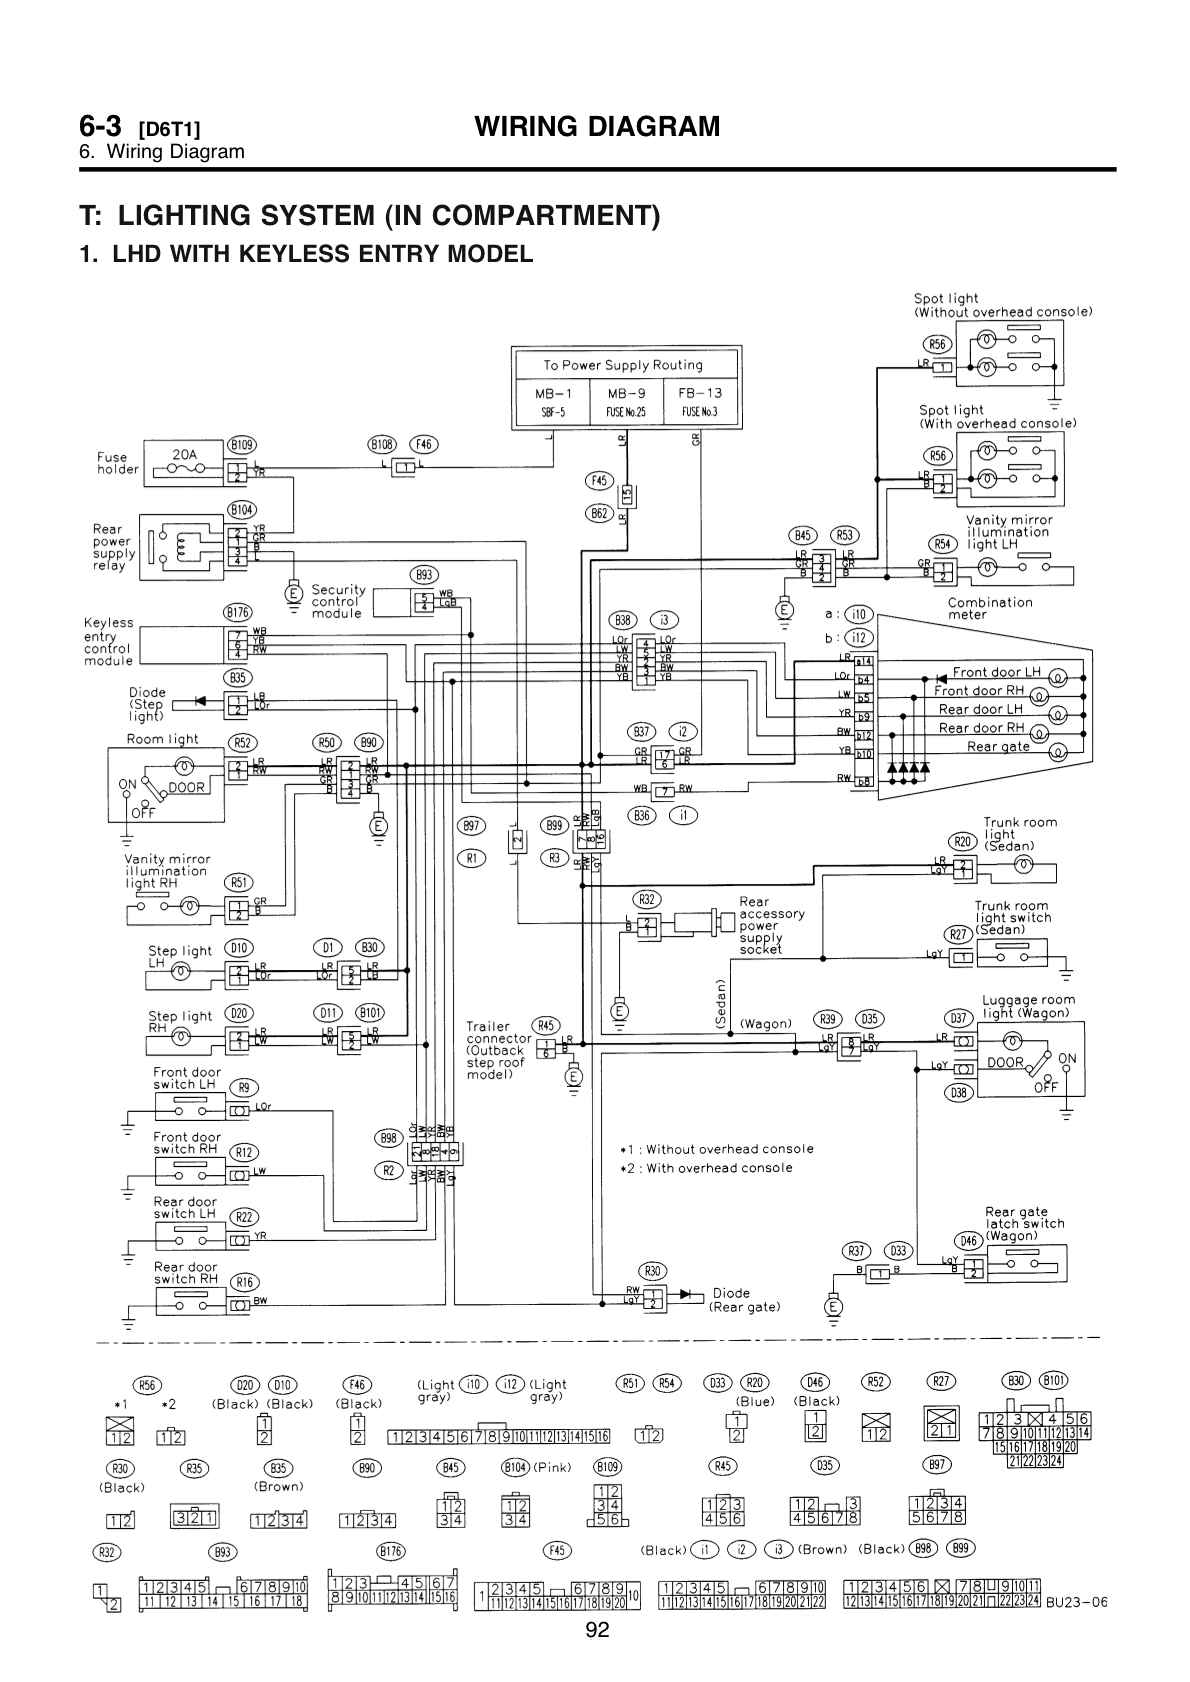 wiring_diagram1 subaru wiring diagrams 1992 subaru legacy heater wiring schematic  at creativeand.co